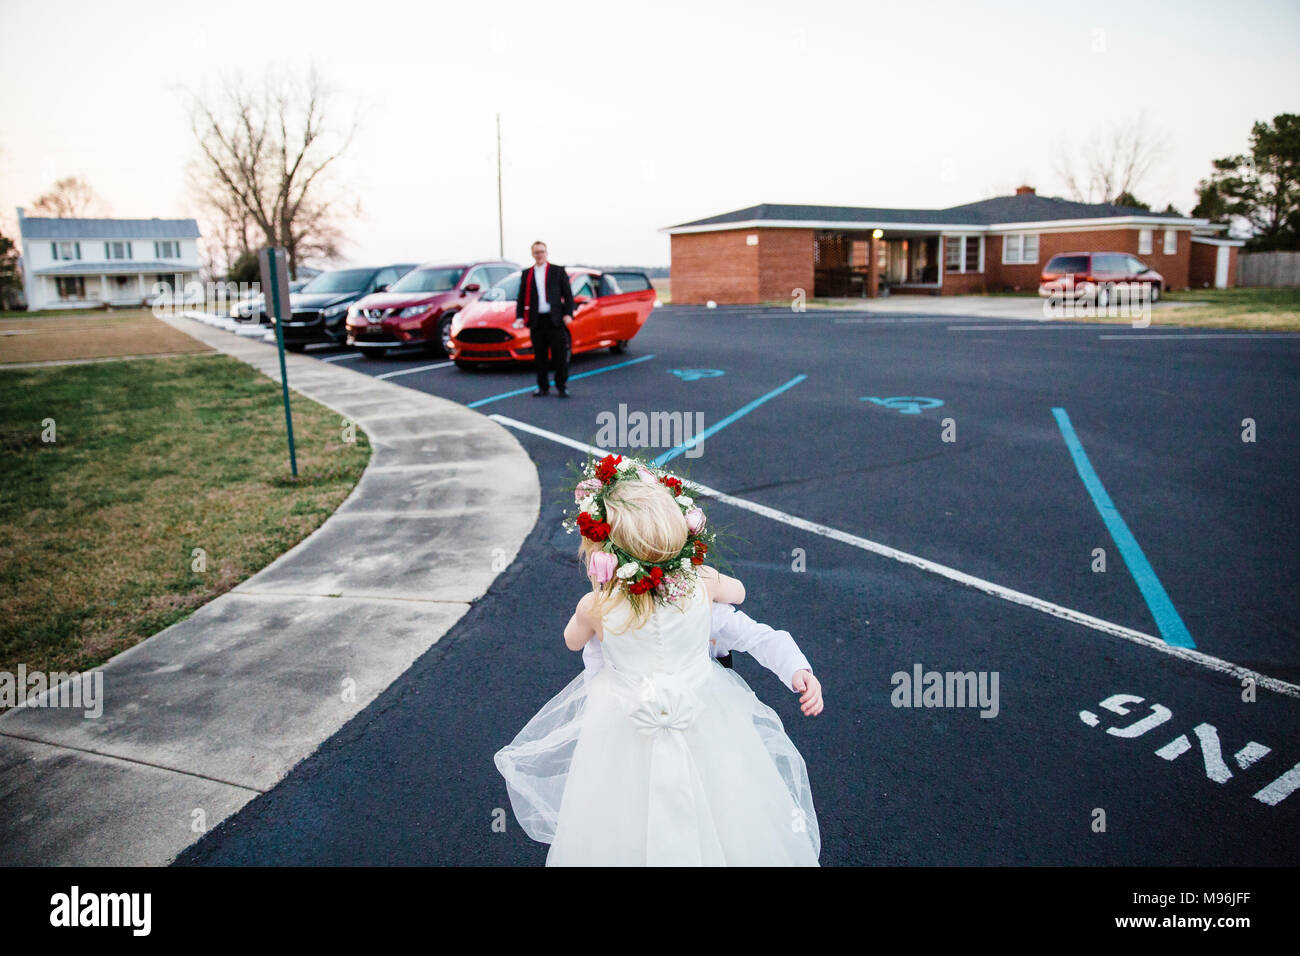 Fille en robe blanche en parking avec guirlande de fleurs Photo Stock